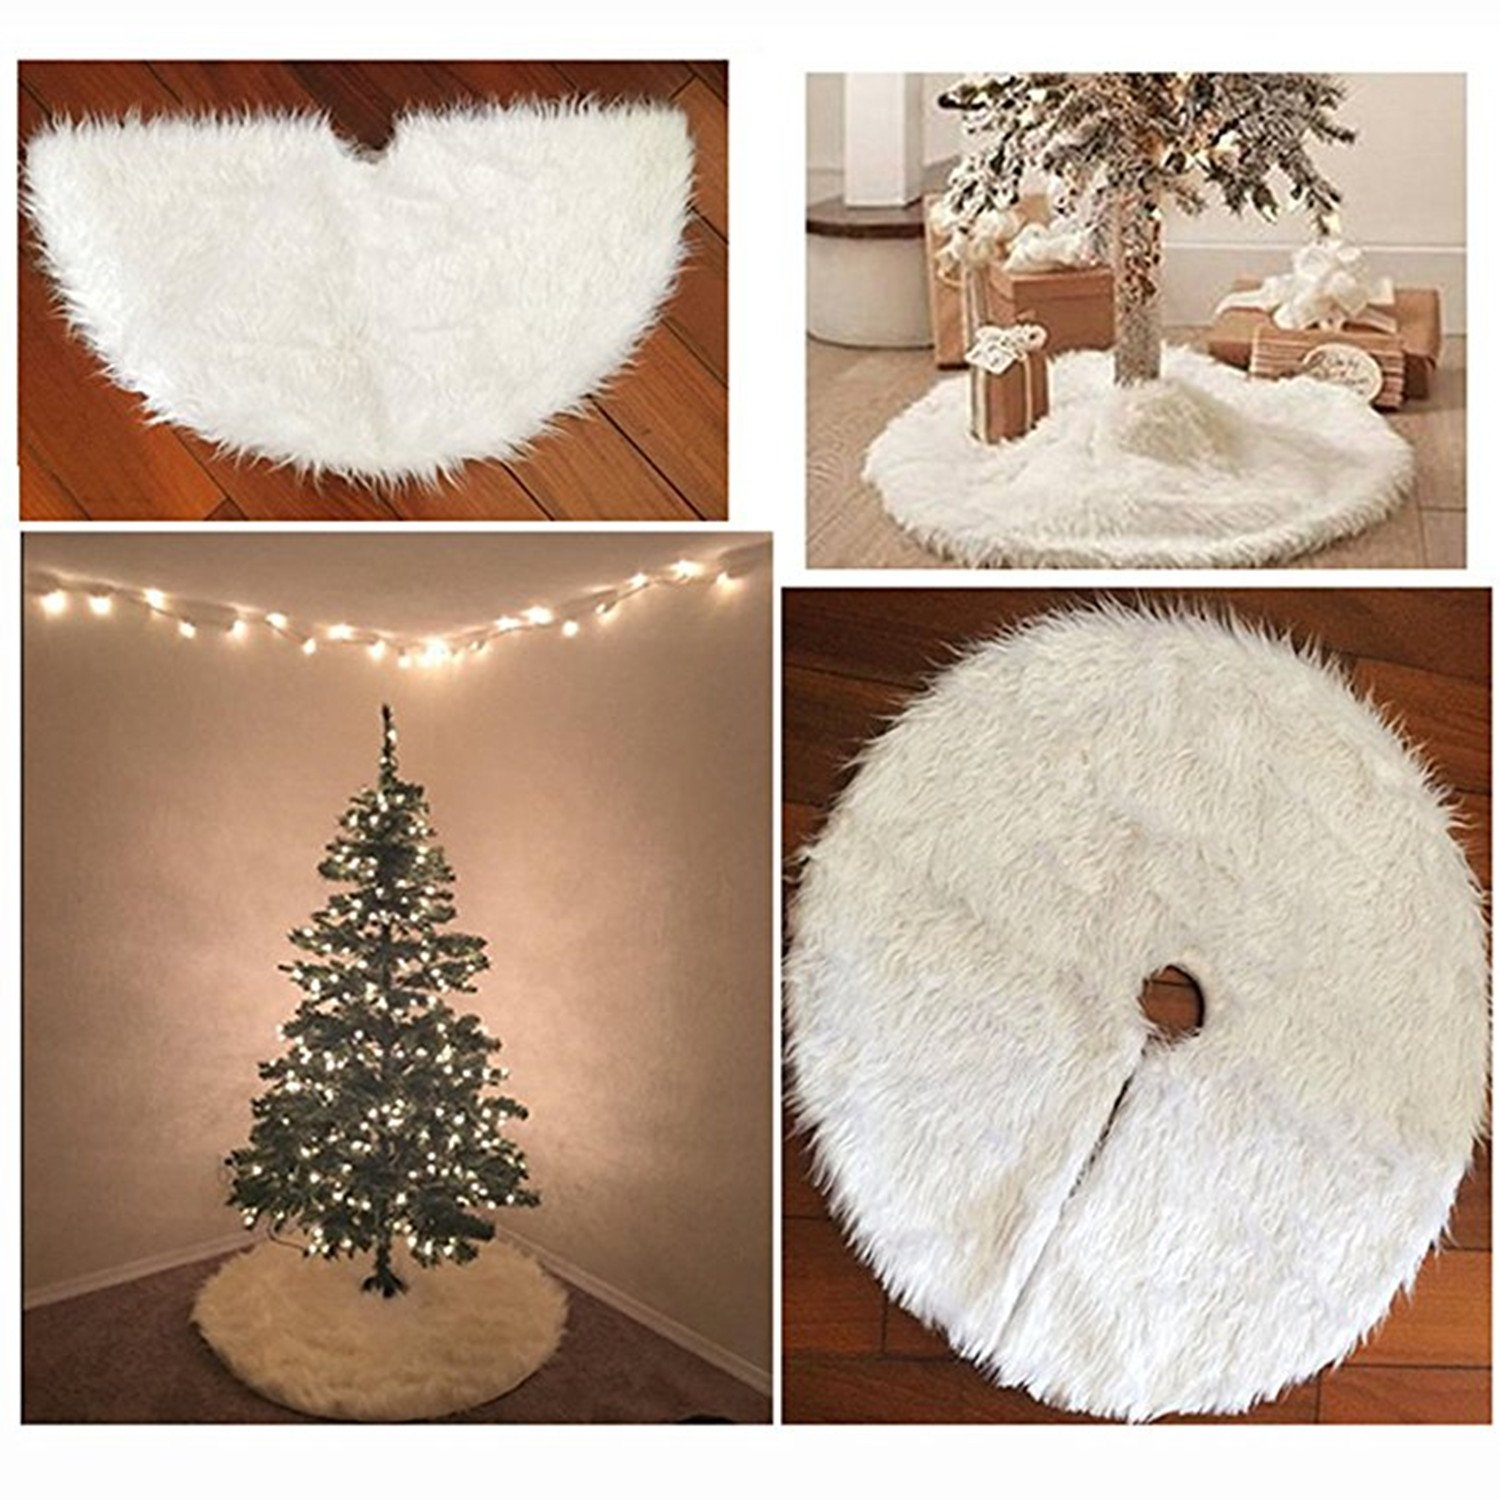 WIN White Christmas Tree Skirt Soft Snow Blanket Holiday Ornaments Decoration (78cm)